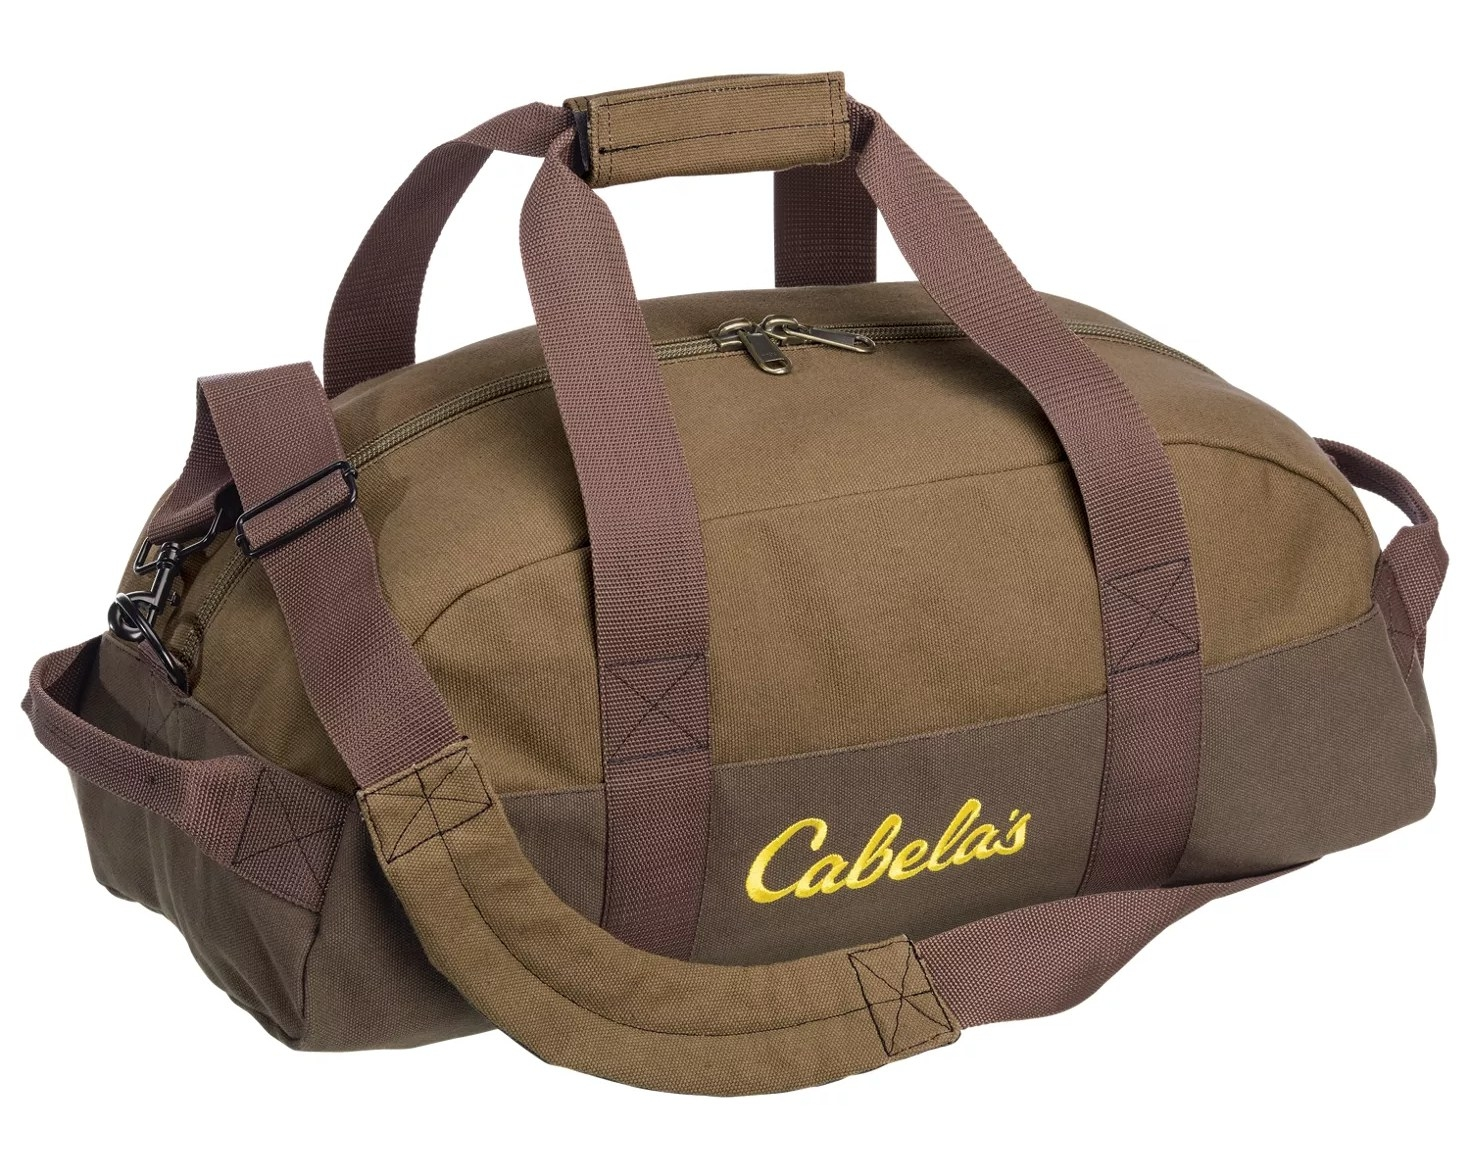 a brown duffle bag with two handles and a cross body strap